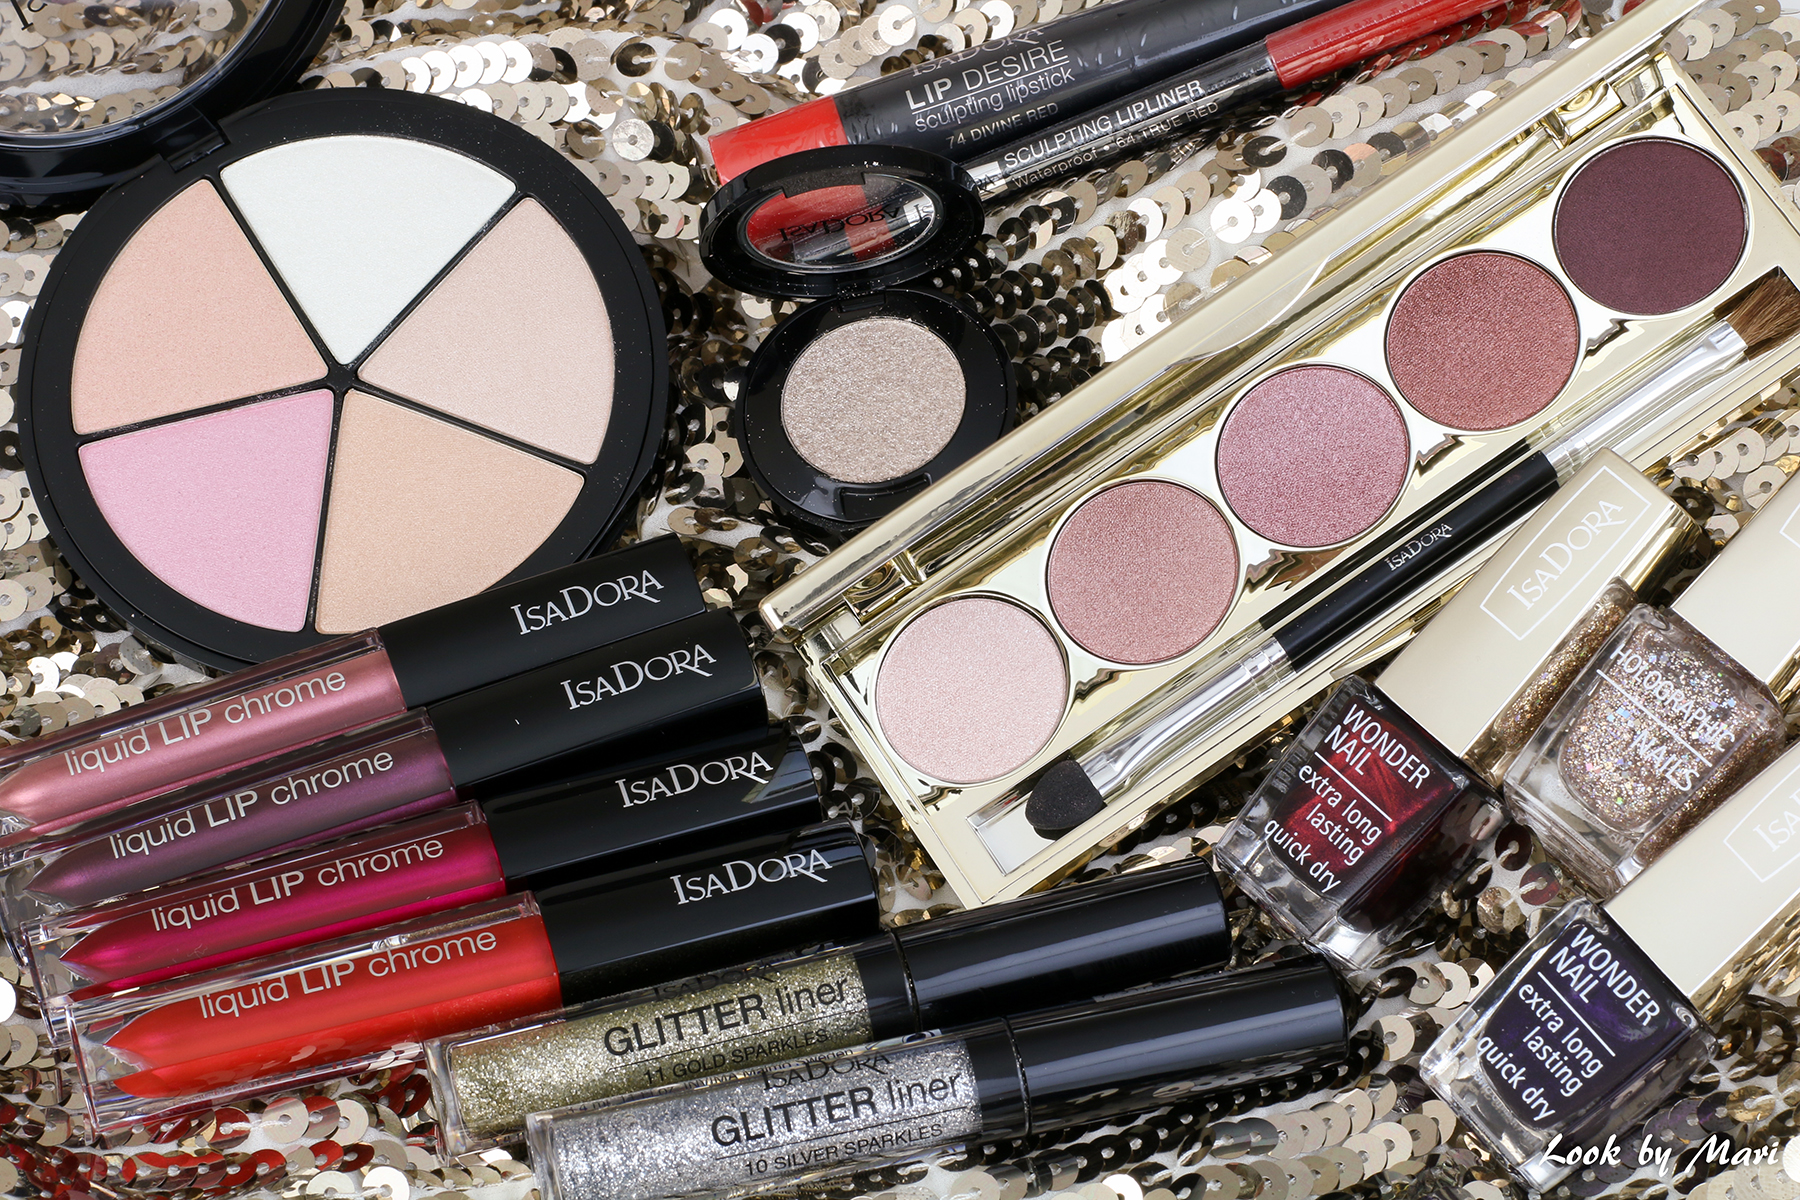 3 isadora holiday collection 2017 lip crome eyeshadow palette glitter liner review swatches